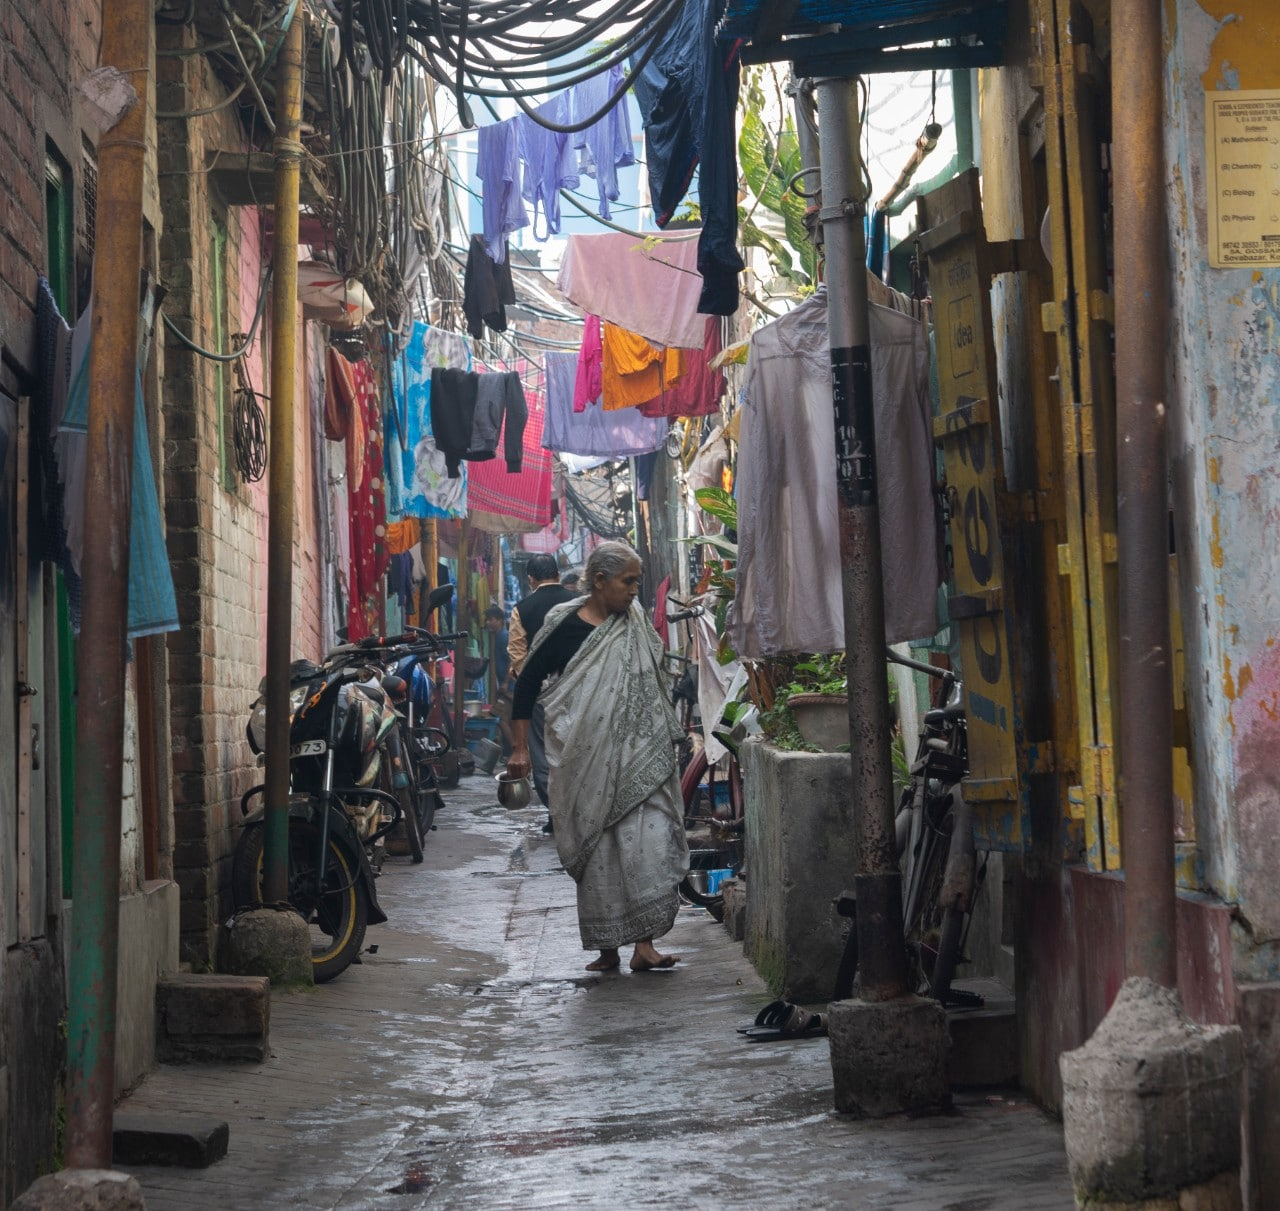 Alley in India Malachi O'Doherty